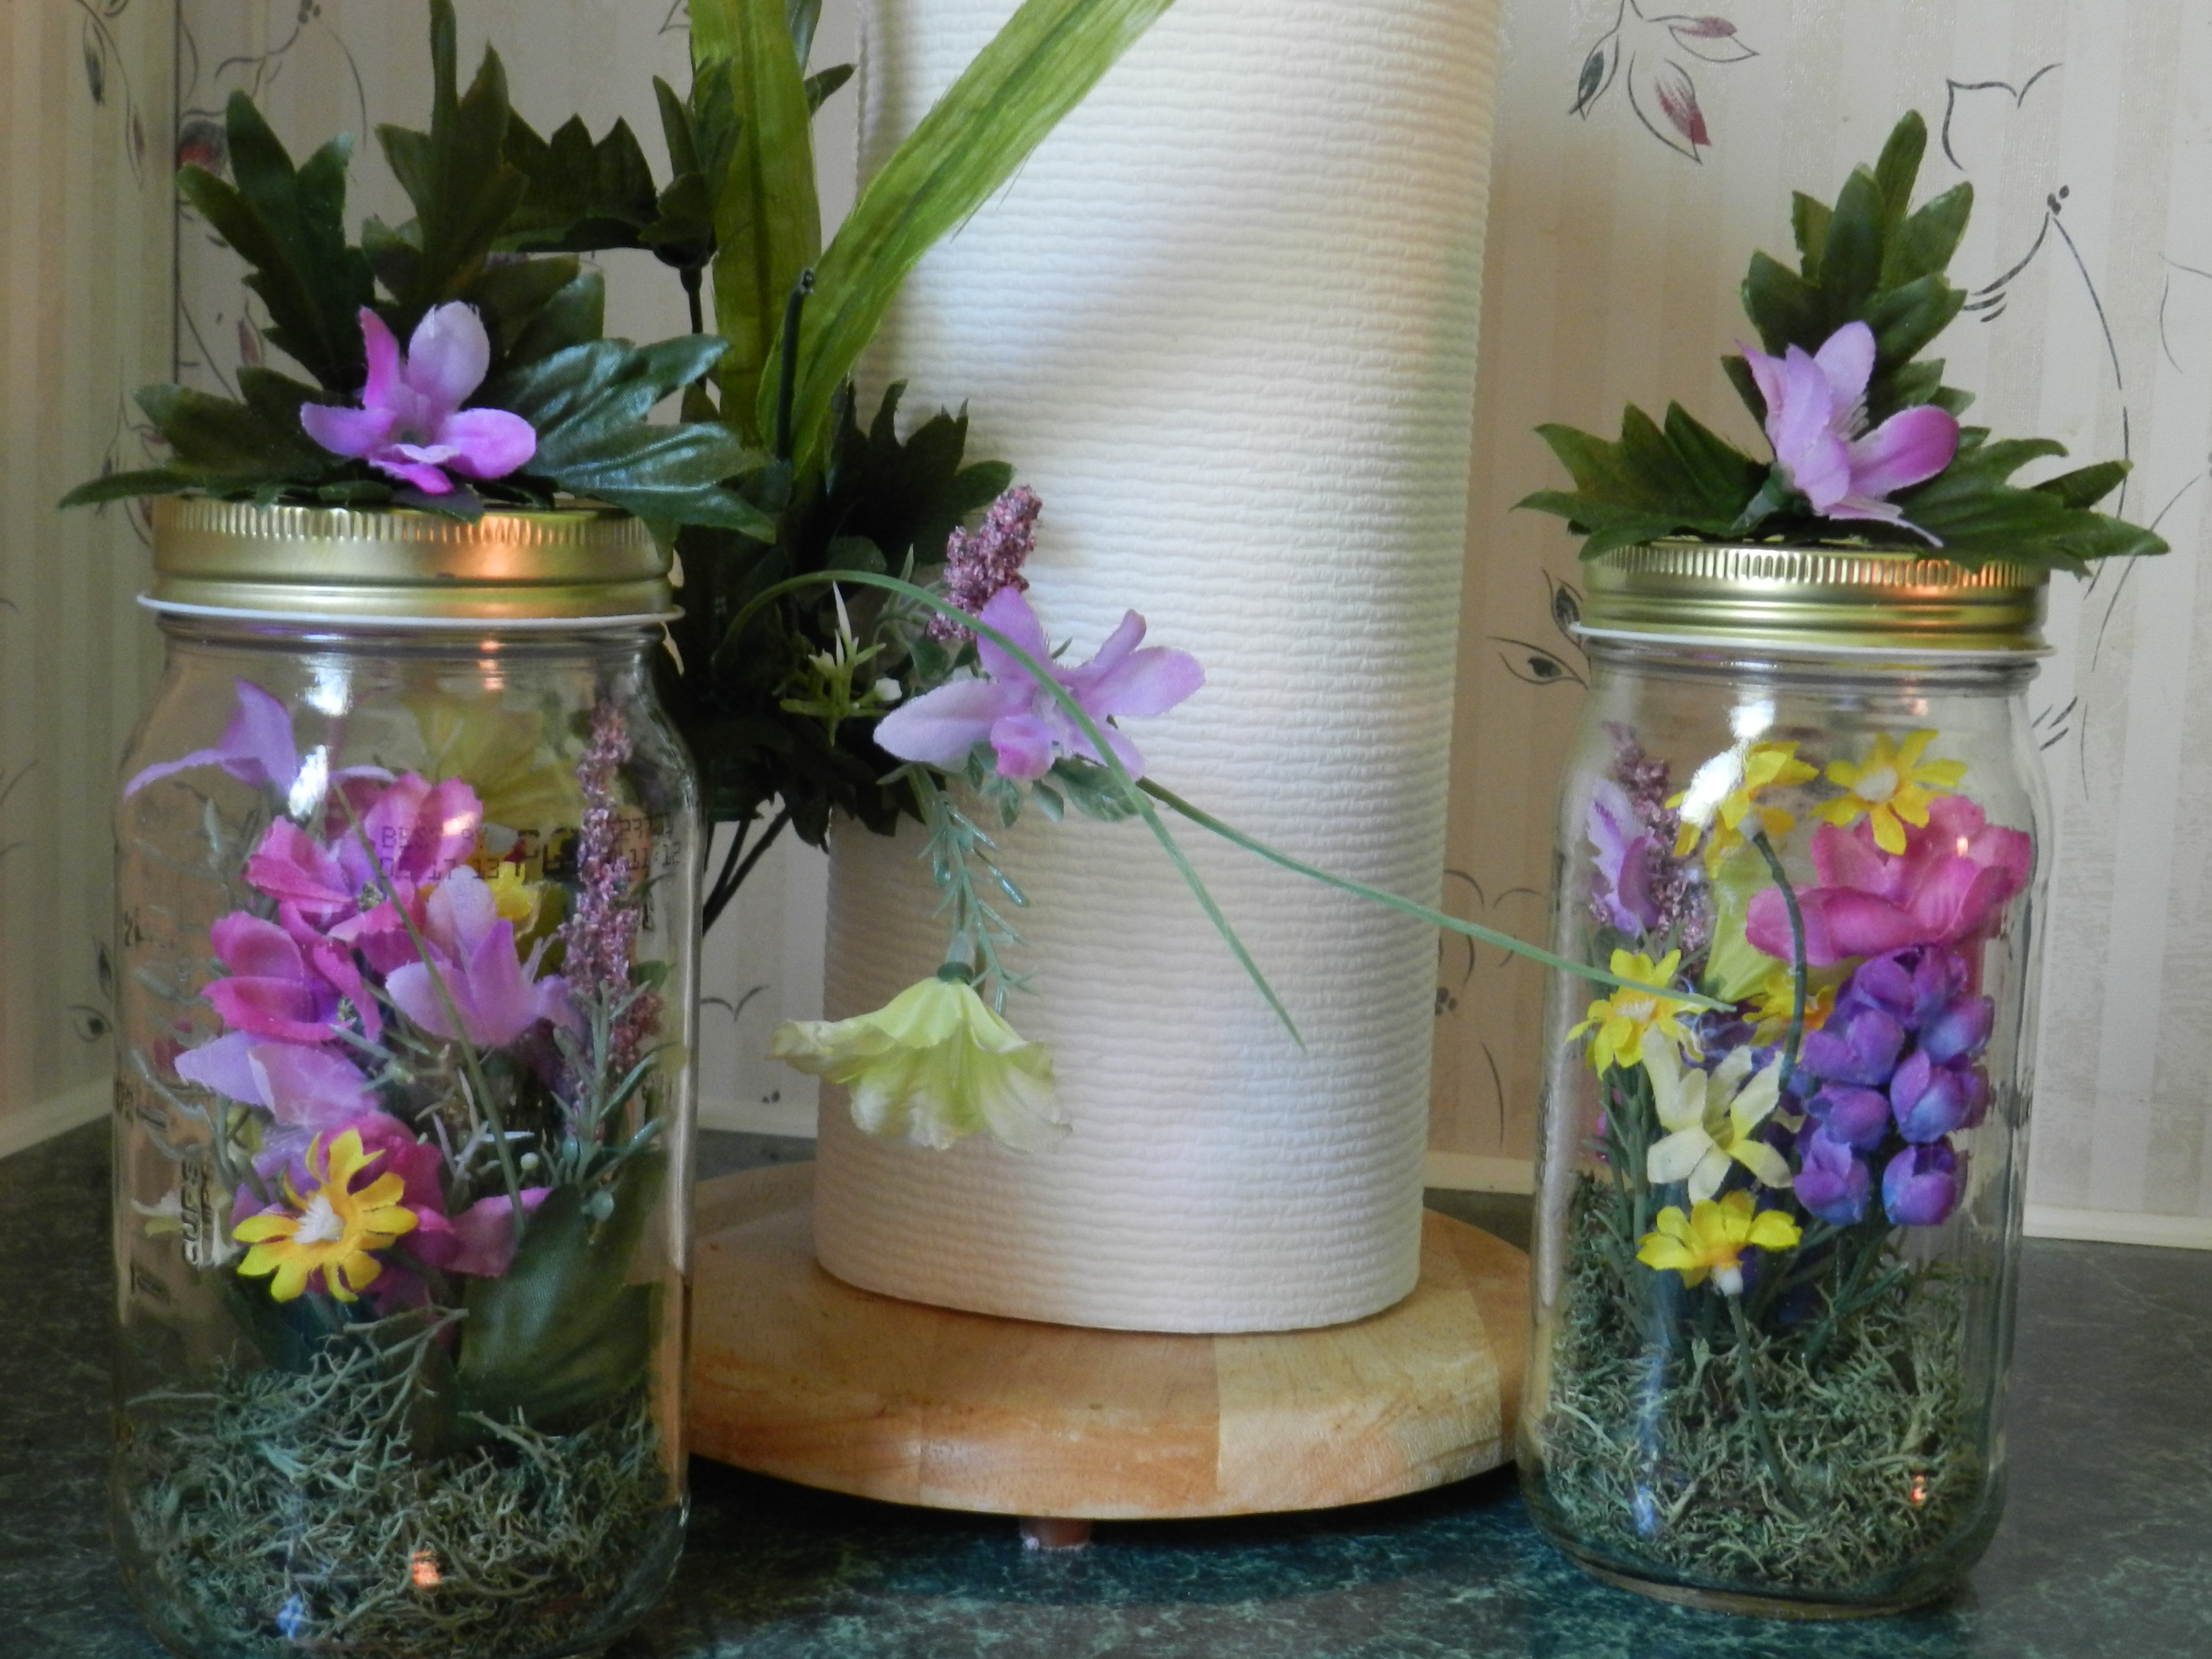 37 cool how to decorate empty glass jars dma homes 87716 for How to decorate empty glass jars